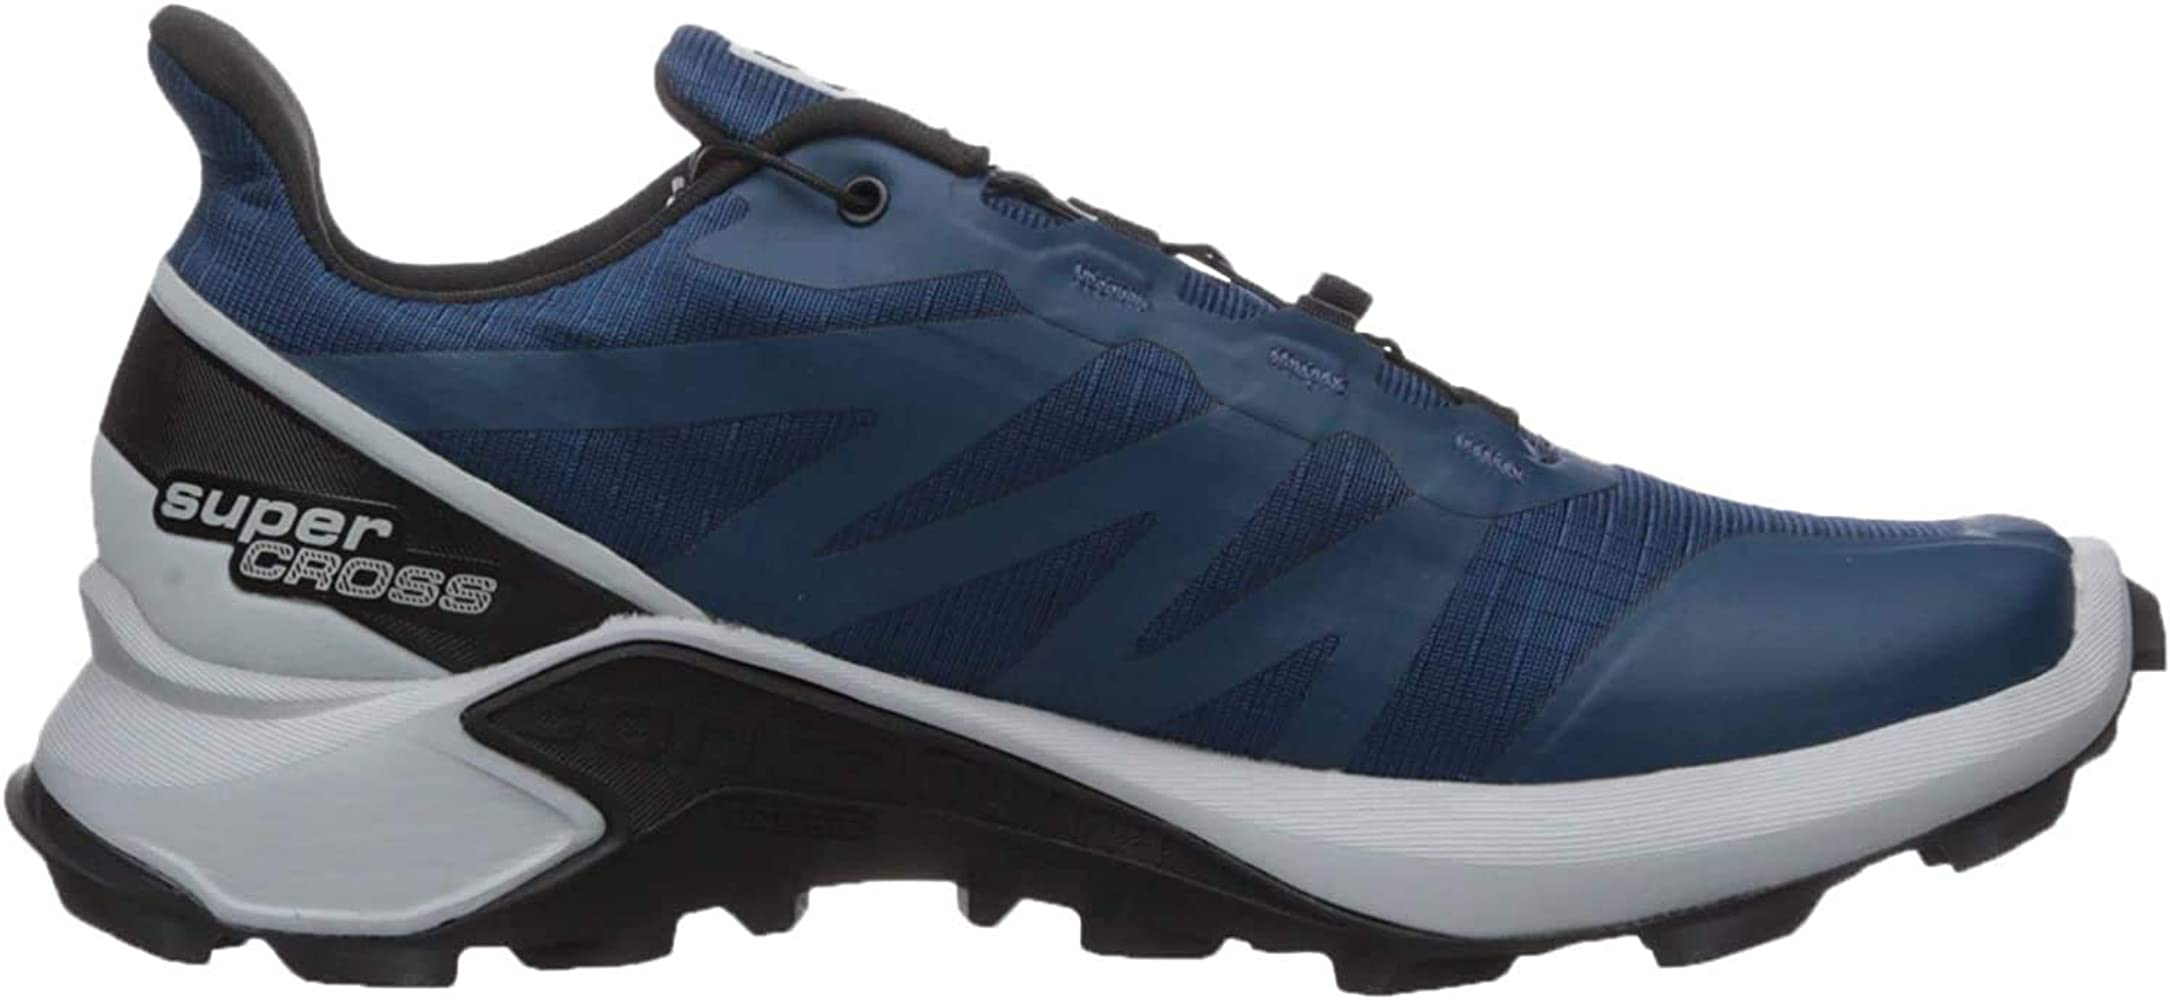 SALOMON Shoes Supercross, Zapatillas de Running para Hombre, Azul ...